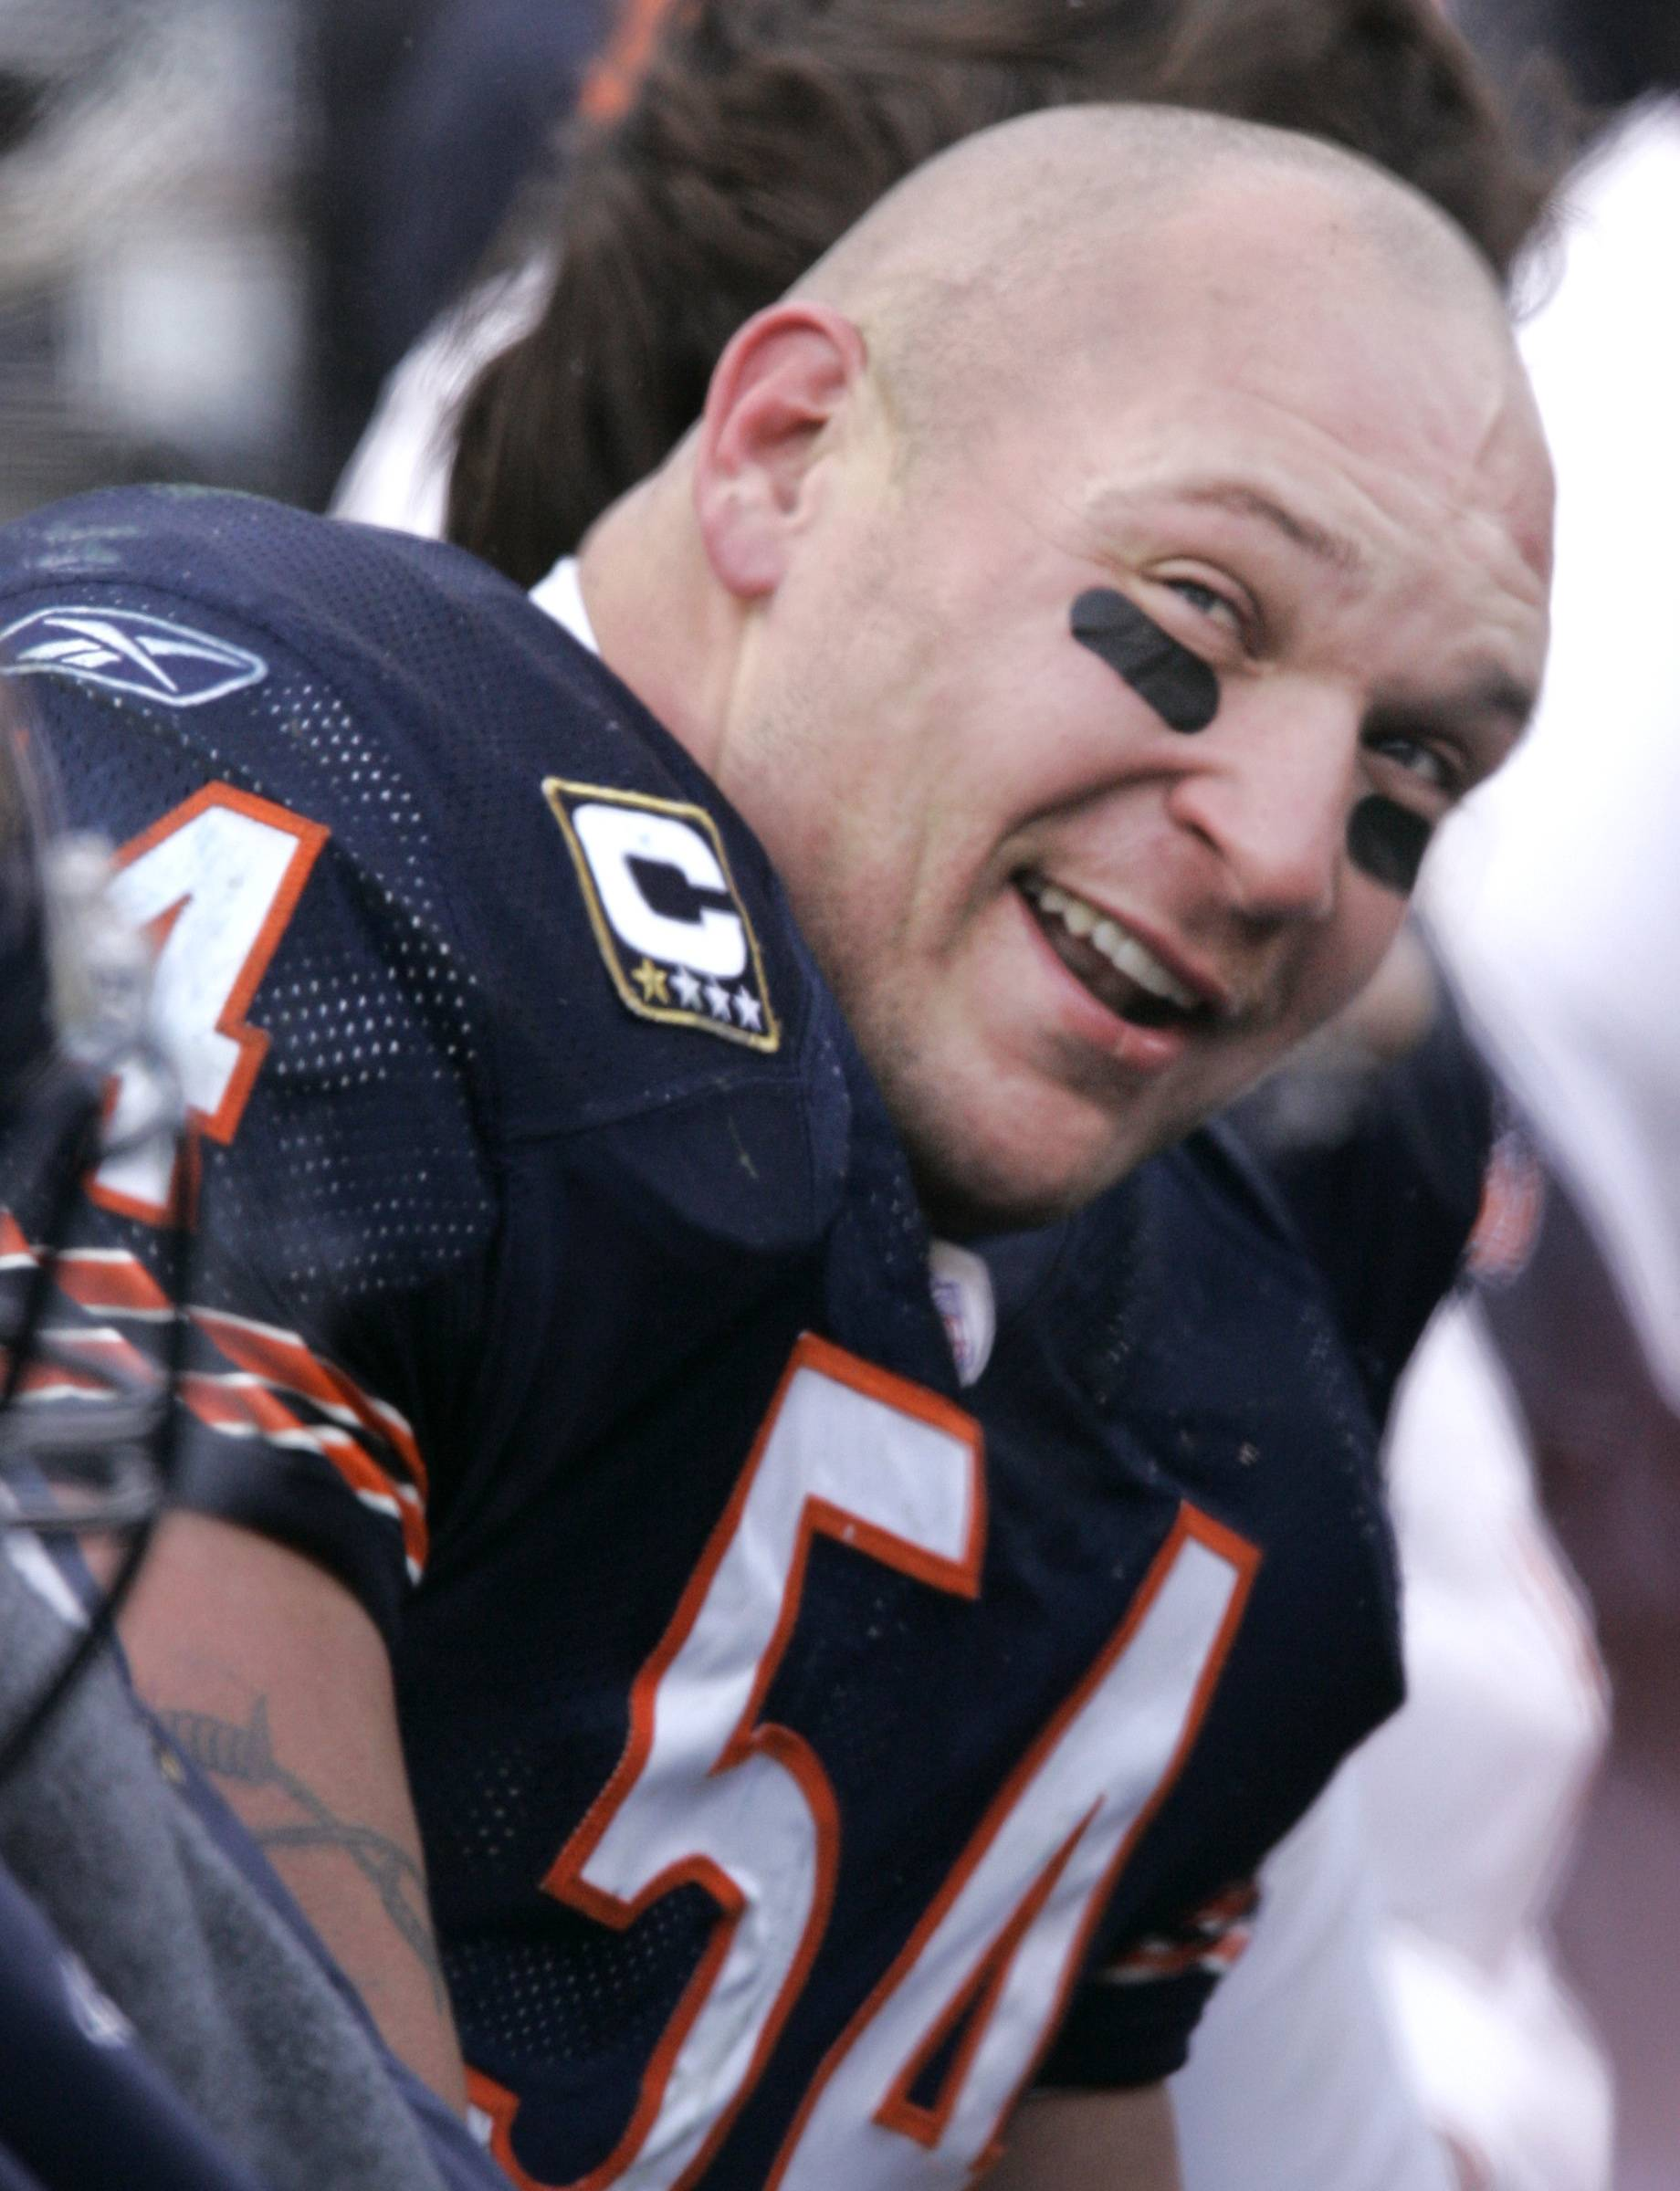 Former Chicago Bears linebacker Brian Urlacher was named to 8 Pro Bowls in his NFL career and earned AP Defensive Rookie of the Year in 2000, and was AP Defensive Player of the Year in 2005.